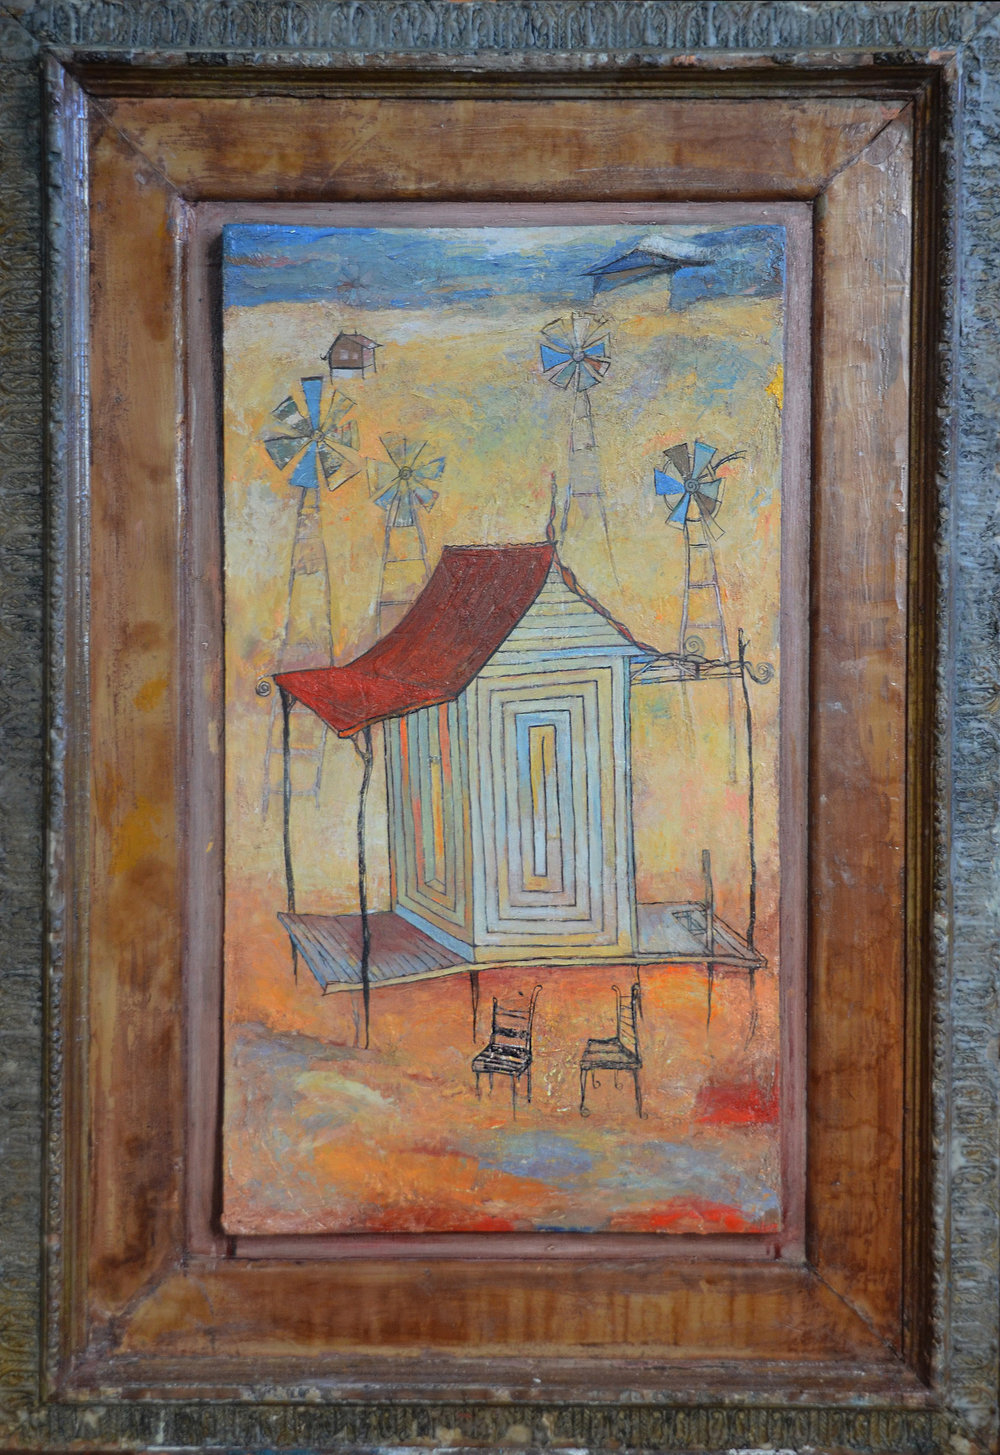 Amaze House, Oil on Wood, 58x36 in, Robert Hite, 2011, sold